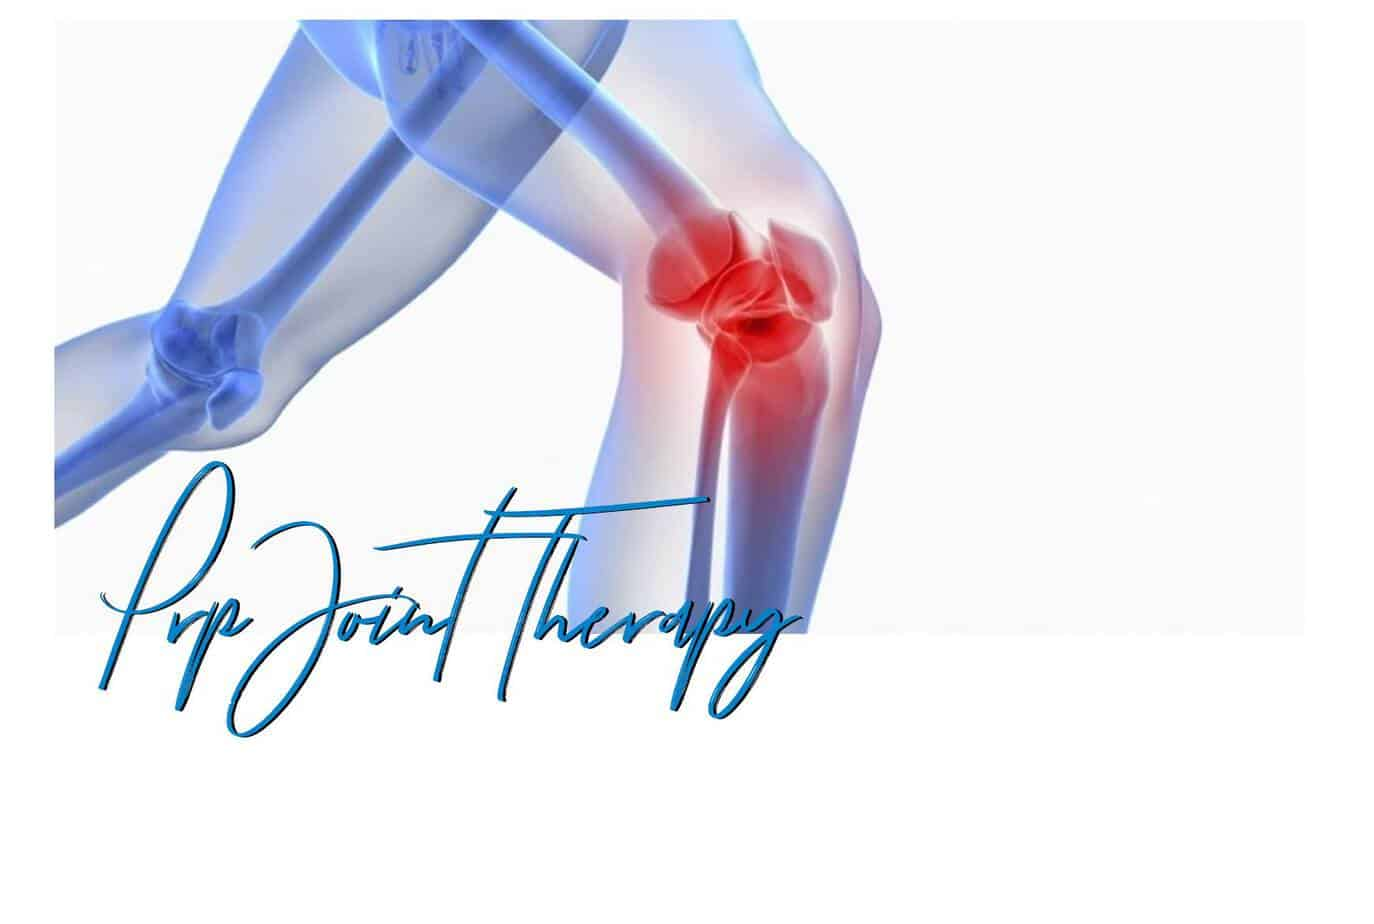 prp joint therapy injections knee pain